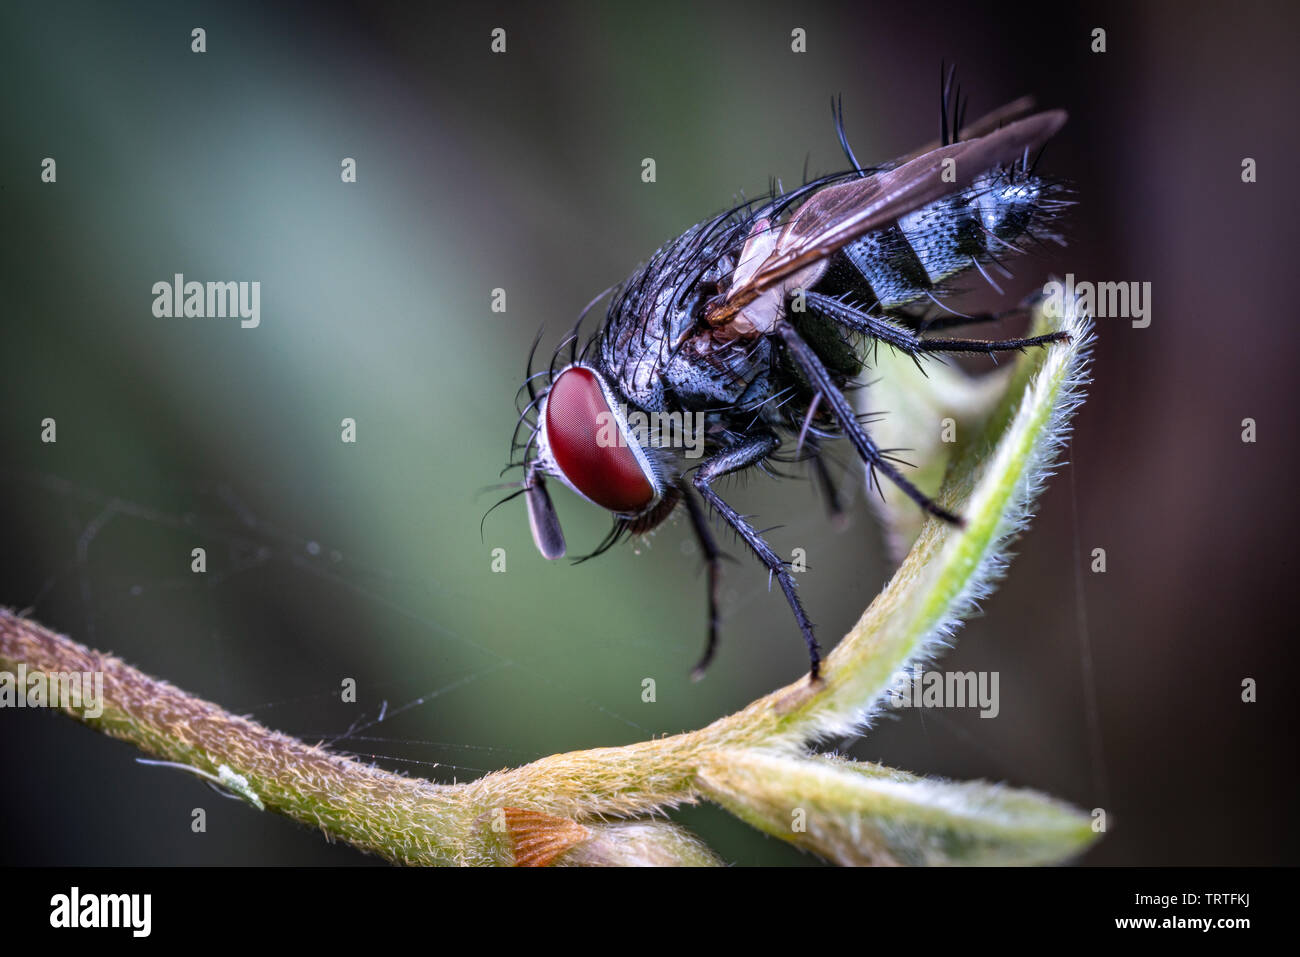 A hairy fly from the family Tachinidae, sitting on a leaf in Queensland rainforest, Australia Stock Photo